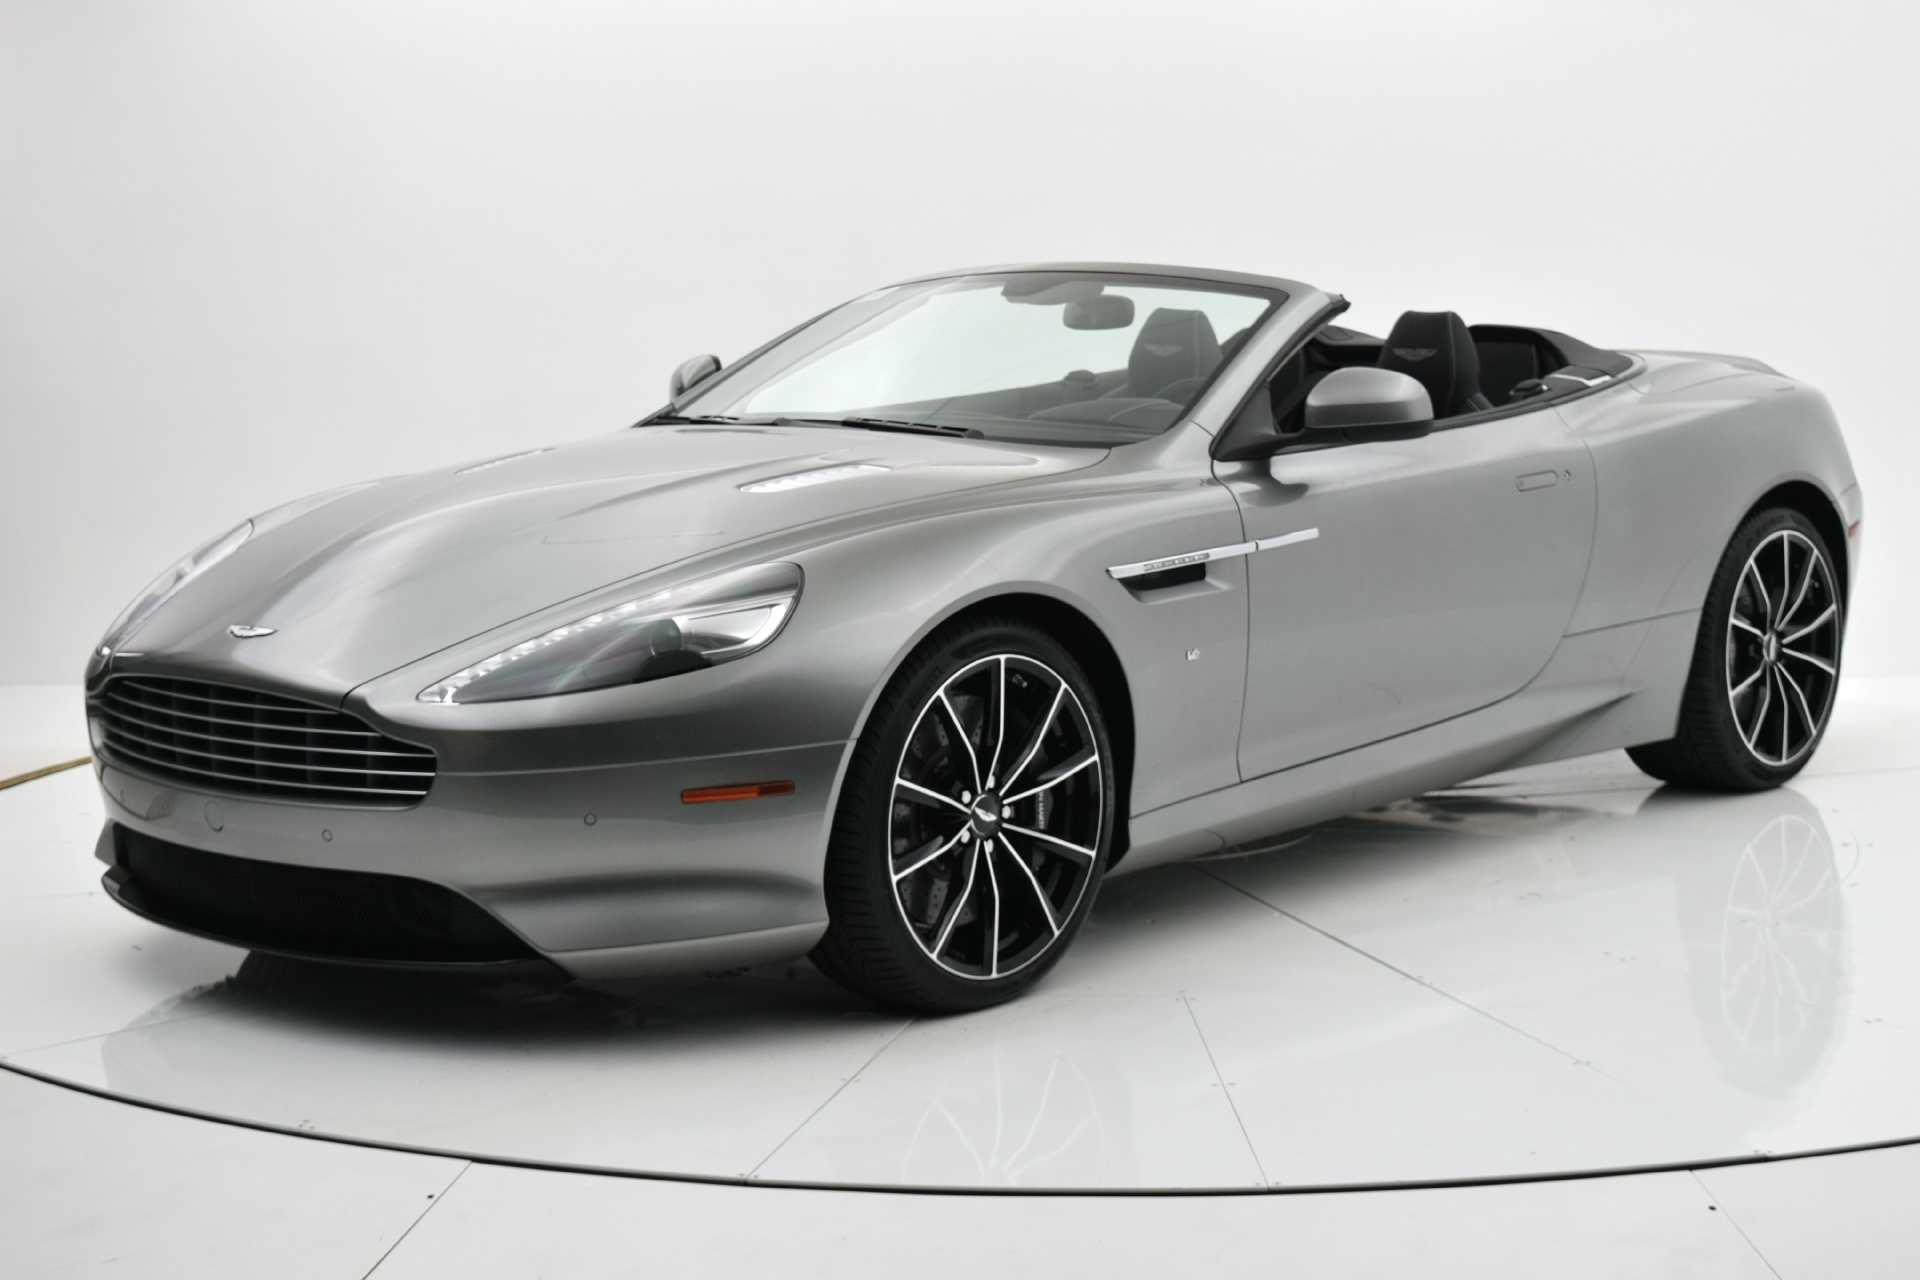 Used 2016 Aston Martin DB9 GT Volante for sale $115,880 at F.C. Kerbeck Lamborghini Palmyra N.J. in Palmyra NJ 08065 2